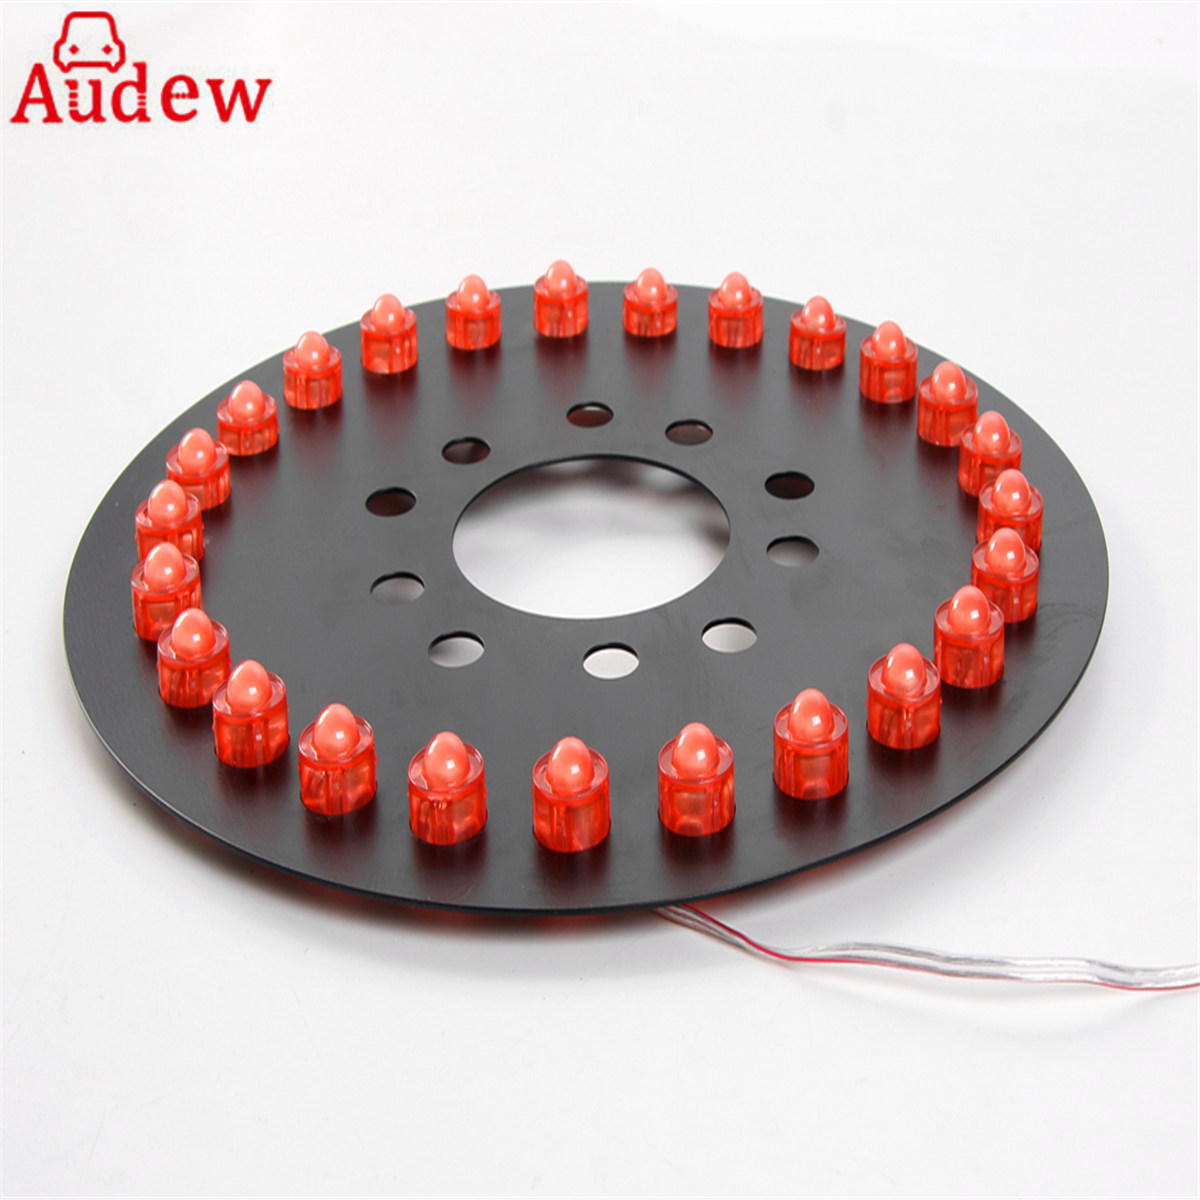 1Pcs  Car Tail 3rd Brake Lights Spare Tire Wheel Lights Accessories For Jeep/Wrangler TJ JK Red Blue White Yellow<br>